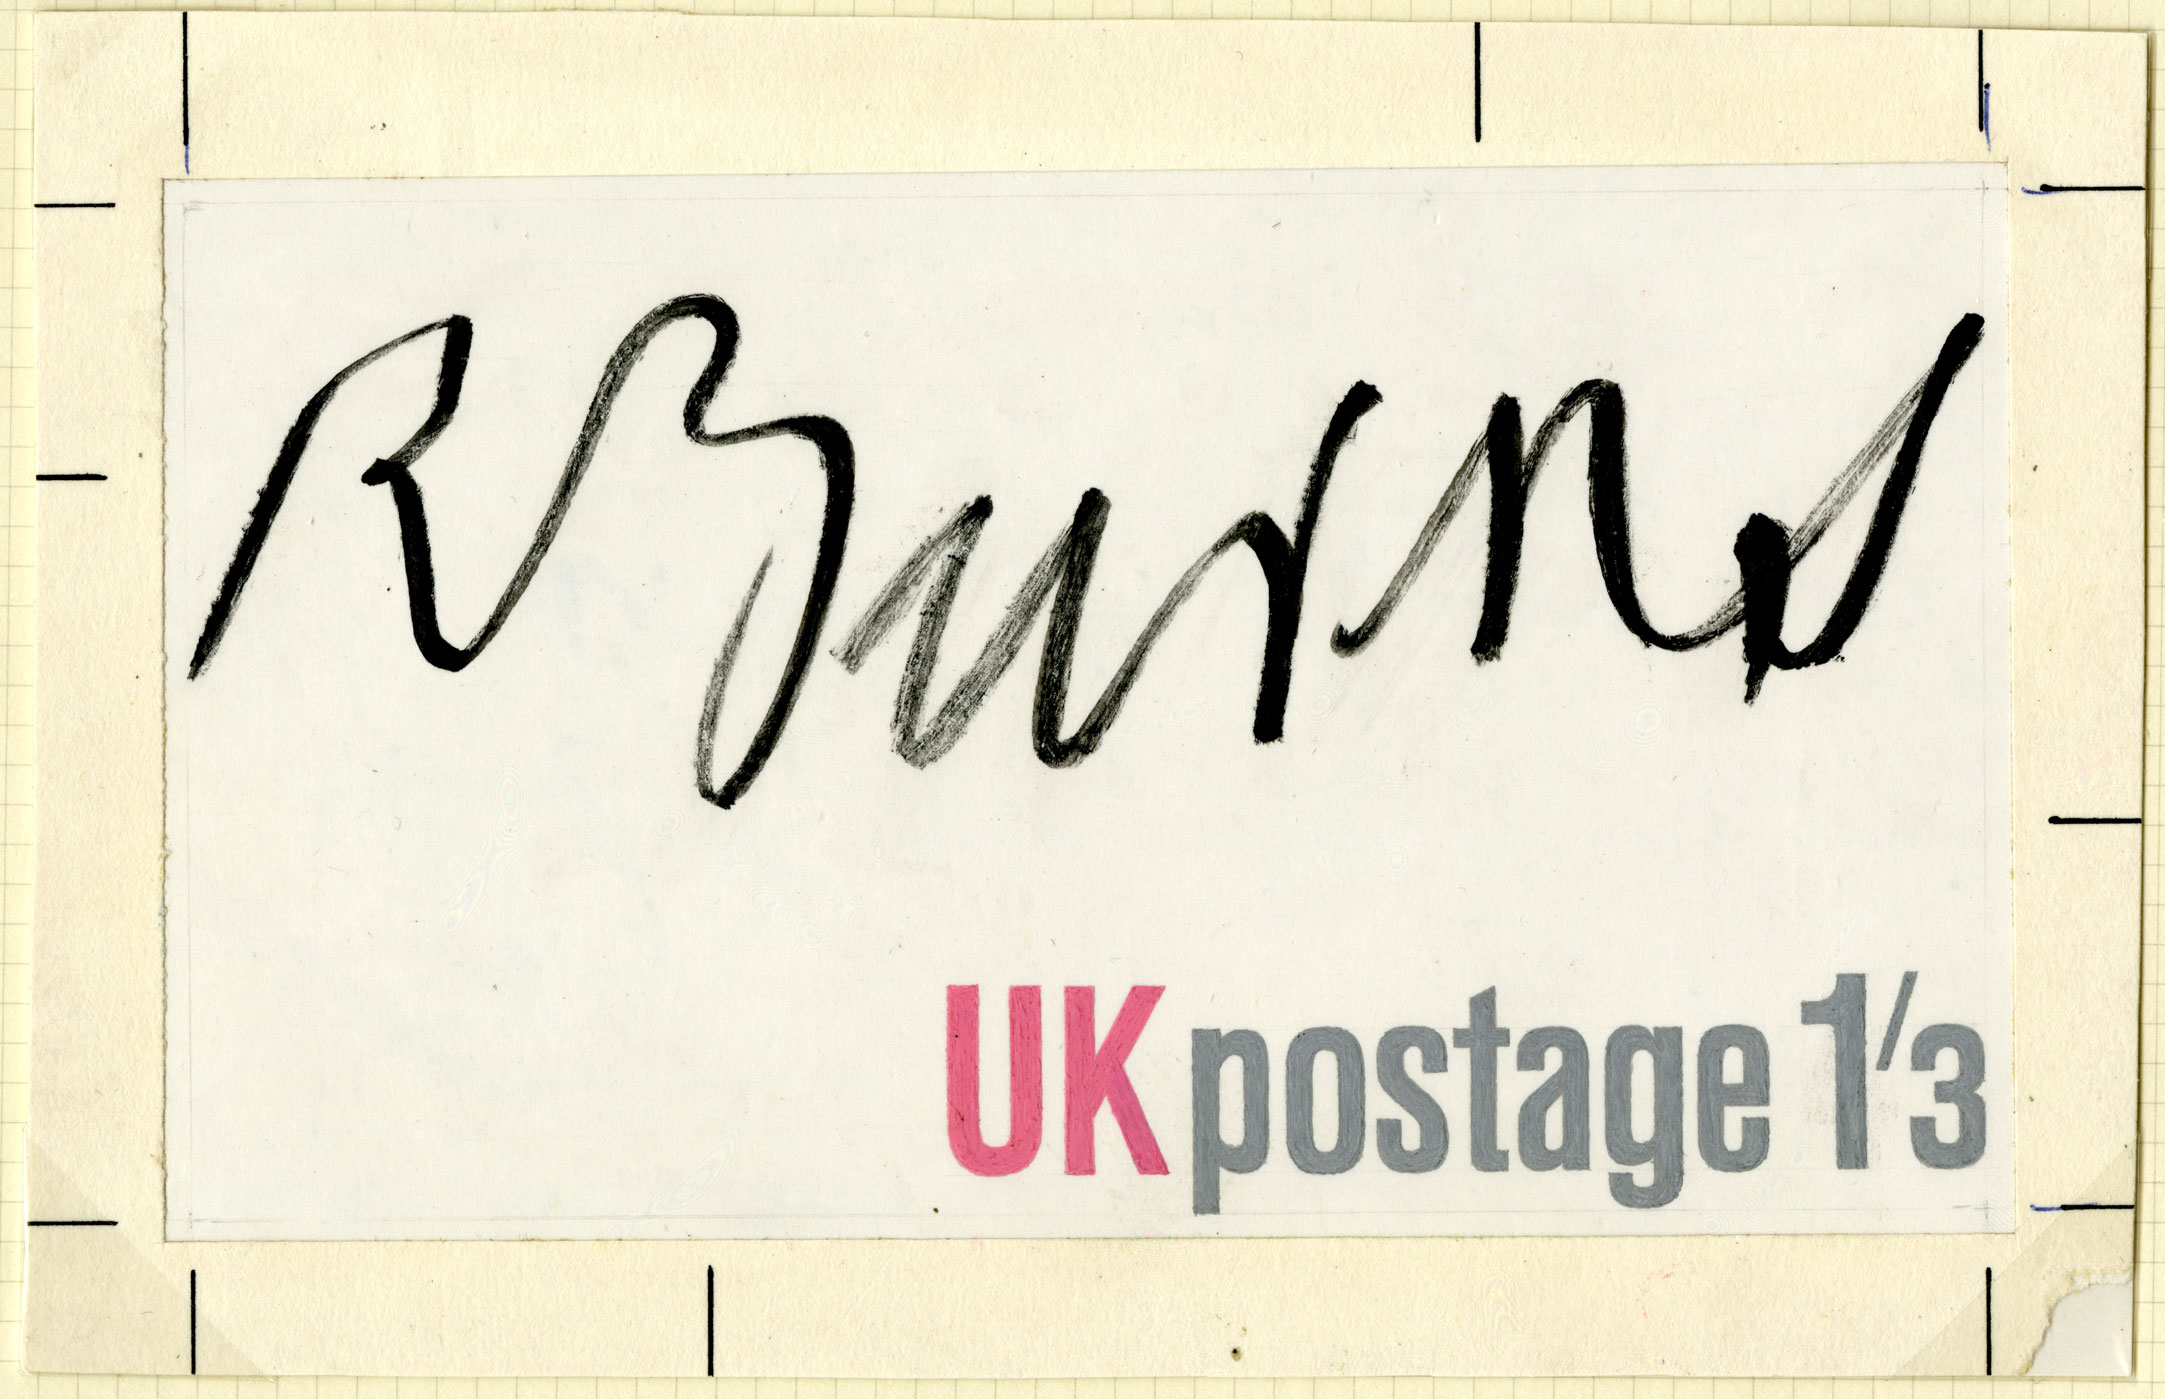 Stamp design featuring the signature of Robert Burns and the words 'UK postage'.